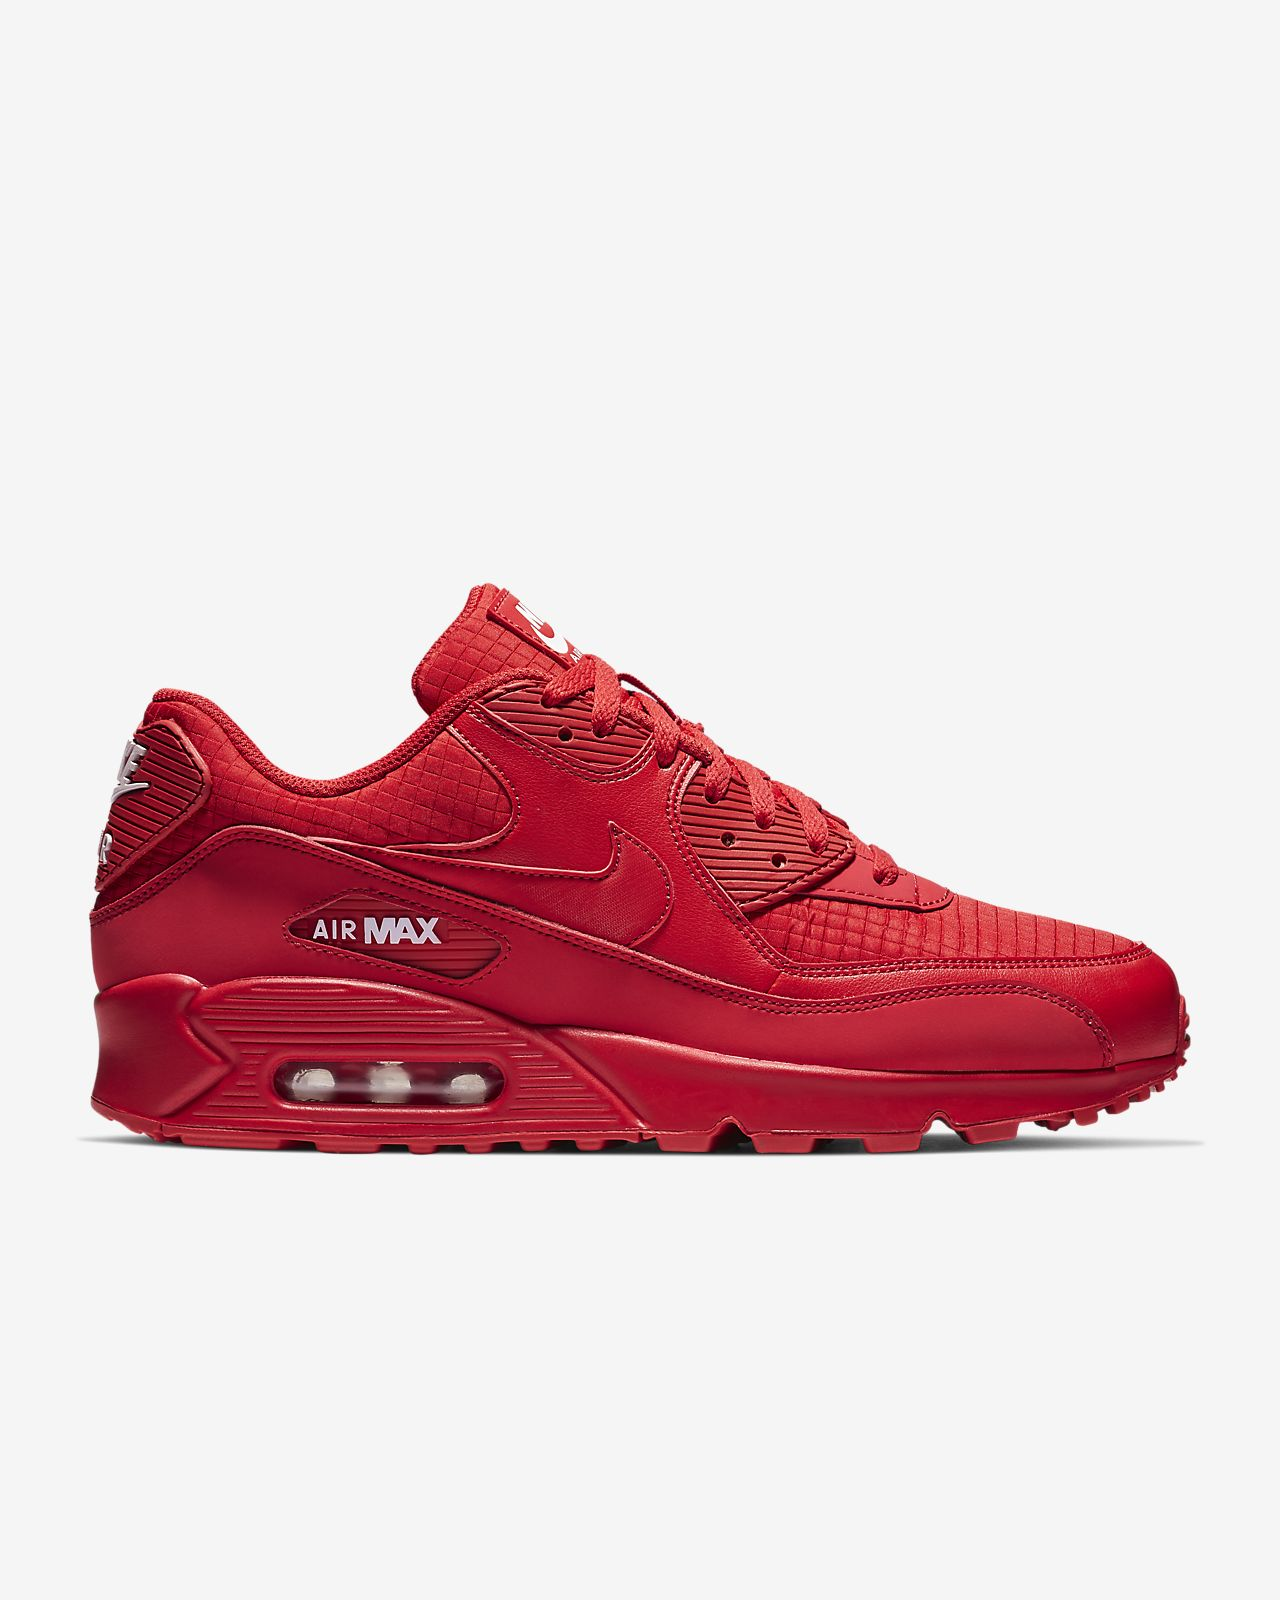 separation shoes b3889 a6ef2 ... Nike Air Max 90 Essential Men s Shoe